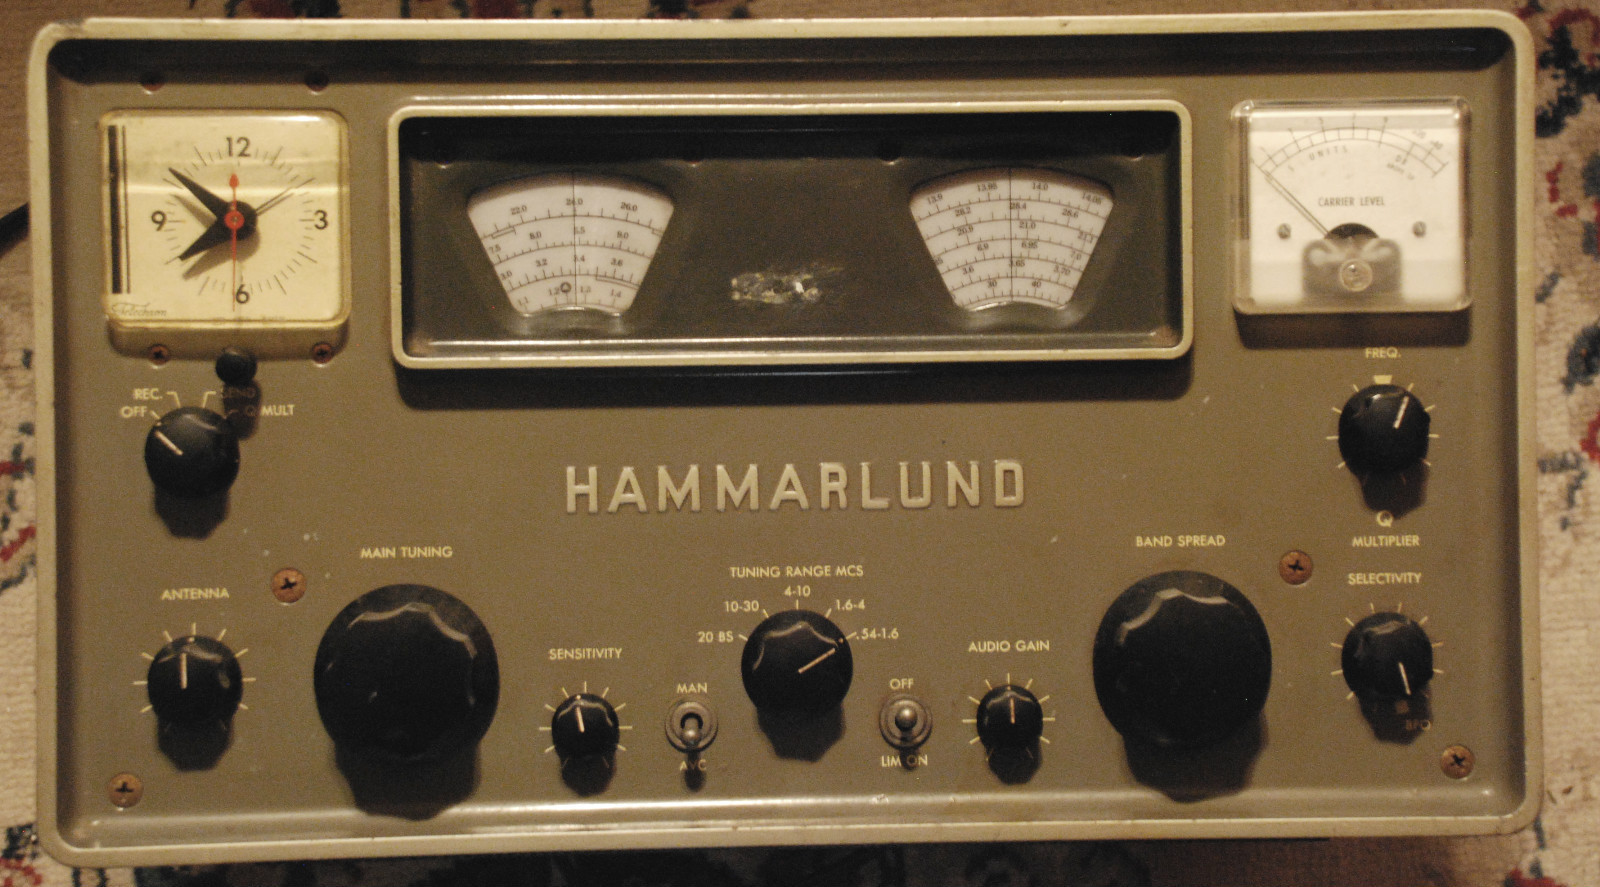 30sBLKecruLACEgownJKTset in addition TRADIO2 43 additionally RF Transmitter Circuit in addition File Early 1920s radio and horn speaker besides File Early 1920s radio and horn speaker. on vacuum tube radio receiver